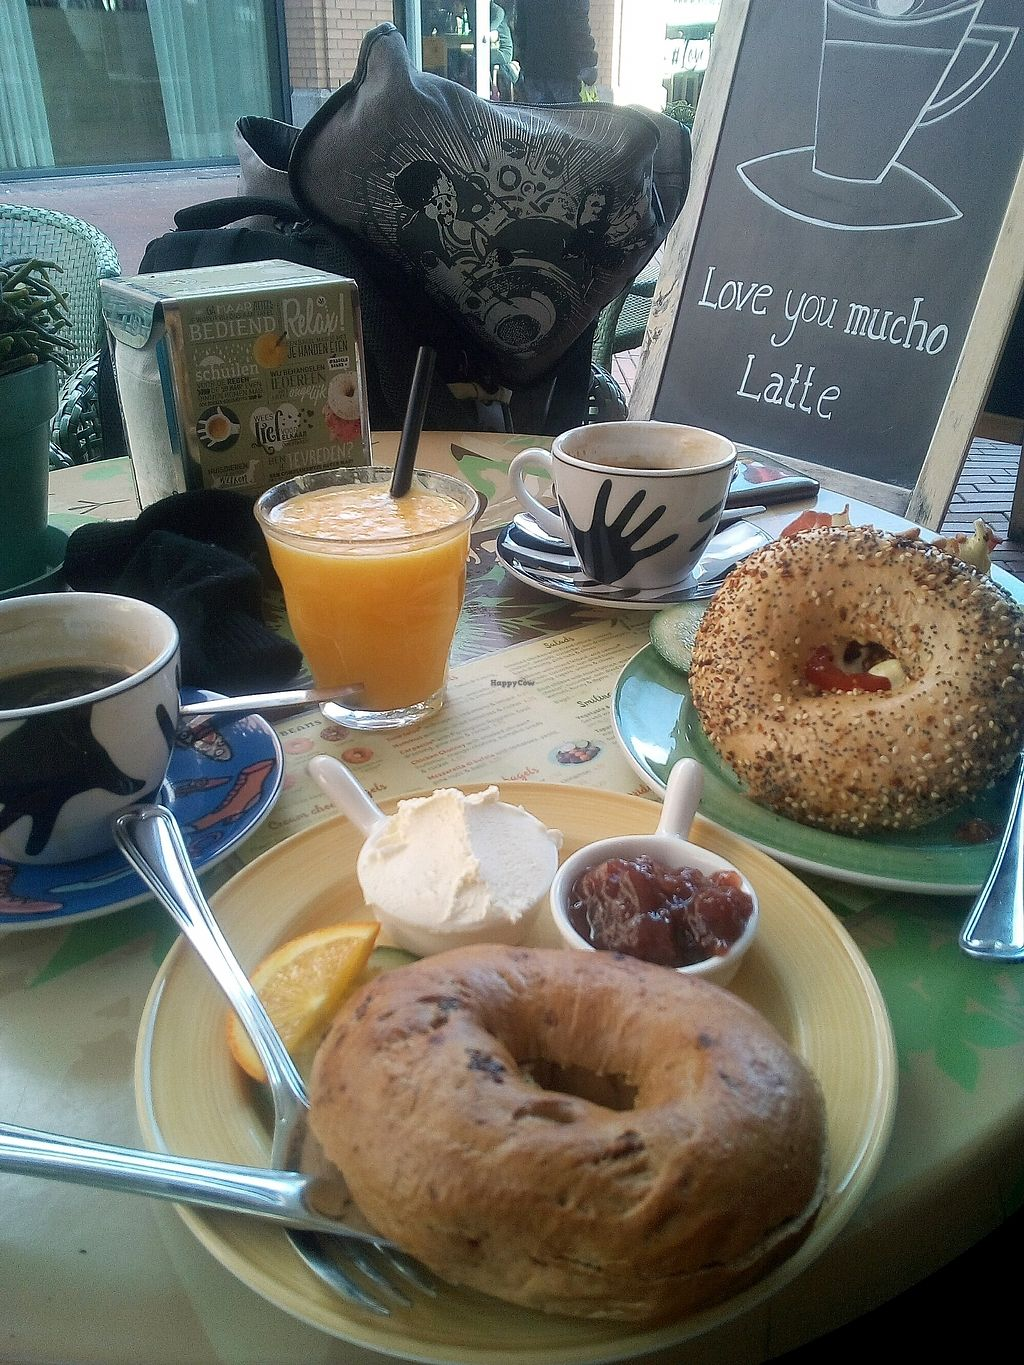 """Photo of Bagels & Beans  by <a href=""""/members/profile/maryfc"""">maryfc</a> <br/>brunch <br/> March 10, 2018  - <a href='/contact/abuse/image/36571/368918'>Report</a>"""